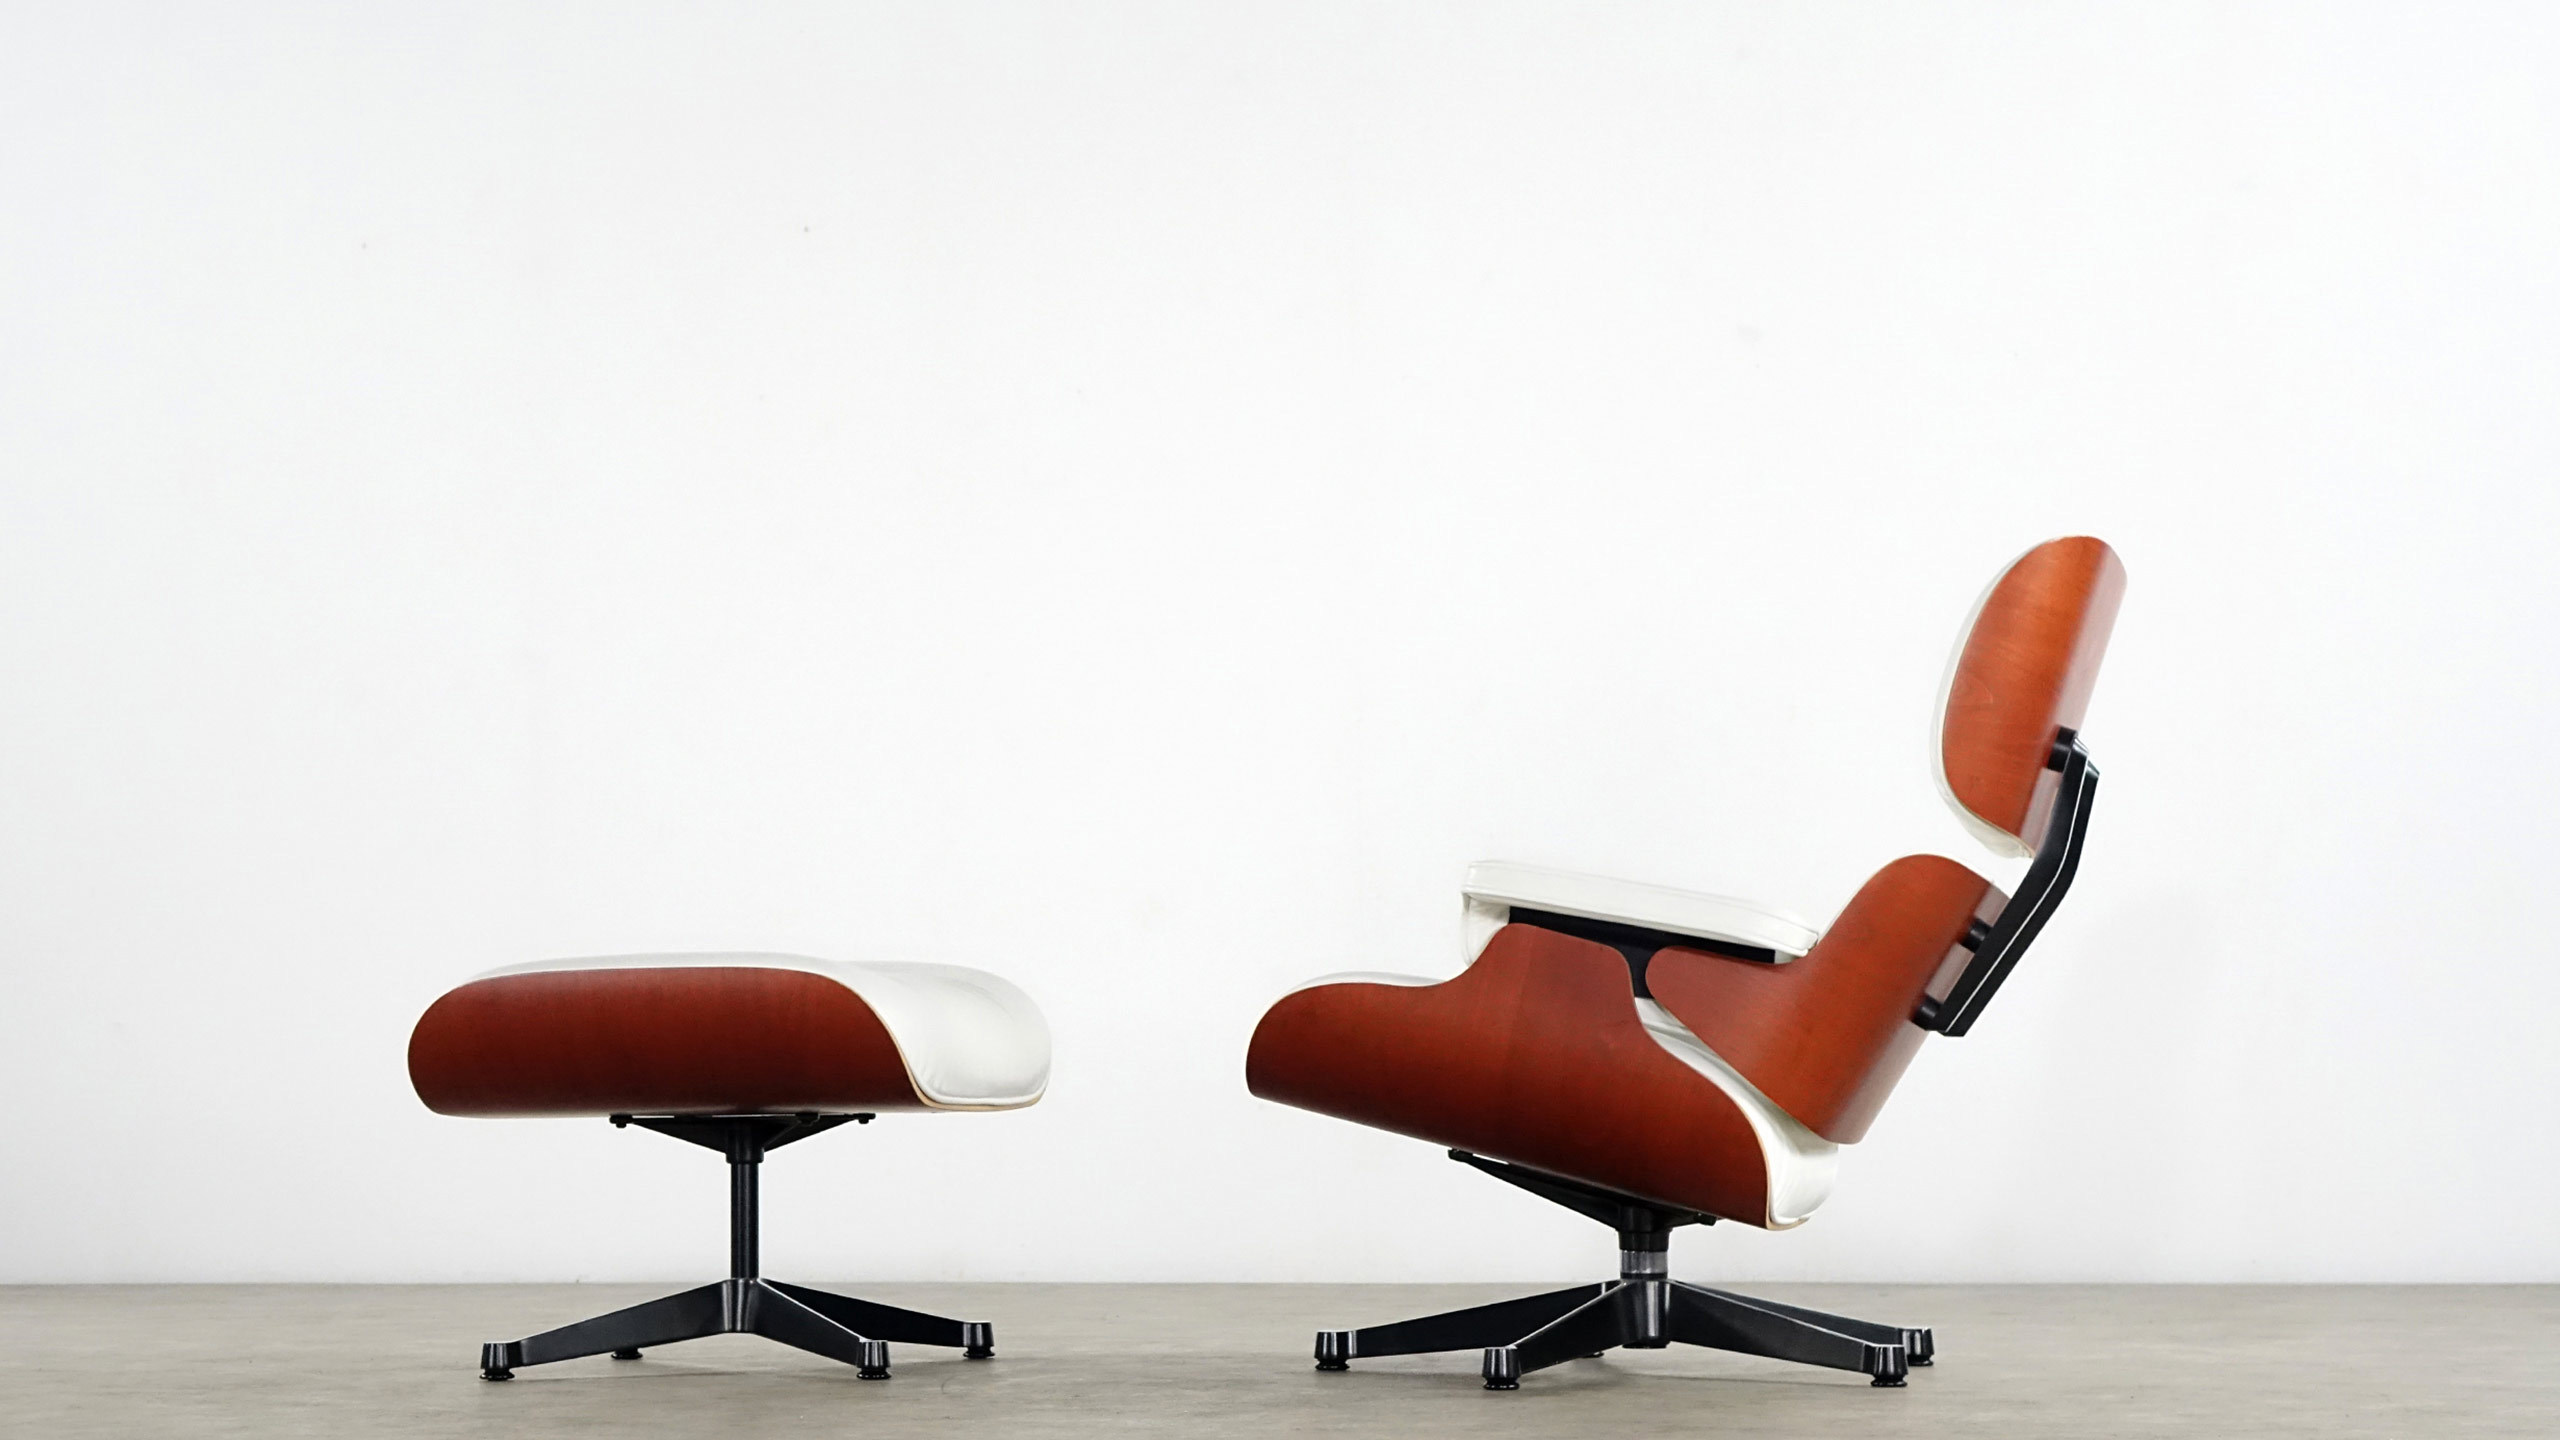 charles eames lounge chair by vitra white leather. Black Bedroom Furniture Sets. Home Design Ideas